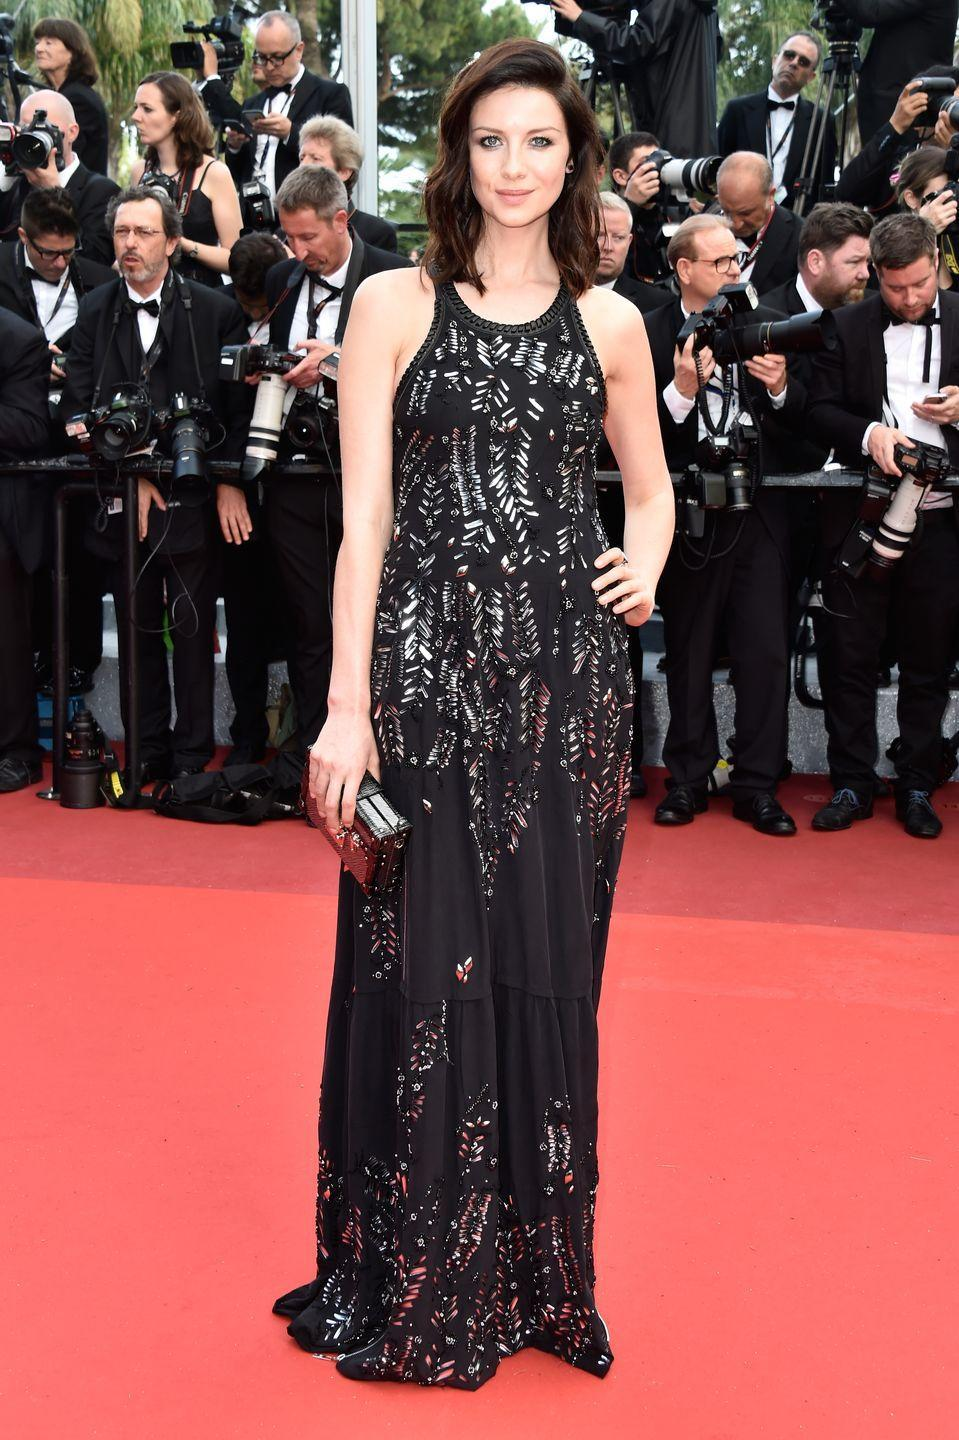 <p>The actress grew up in the small village of Tydavnet with her six other siblings before moving to Paris at 19 to become a model. </p>